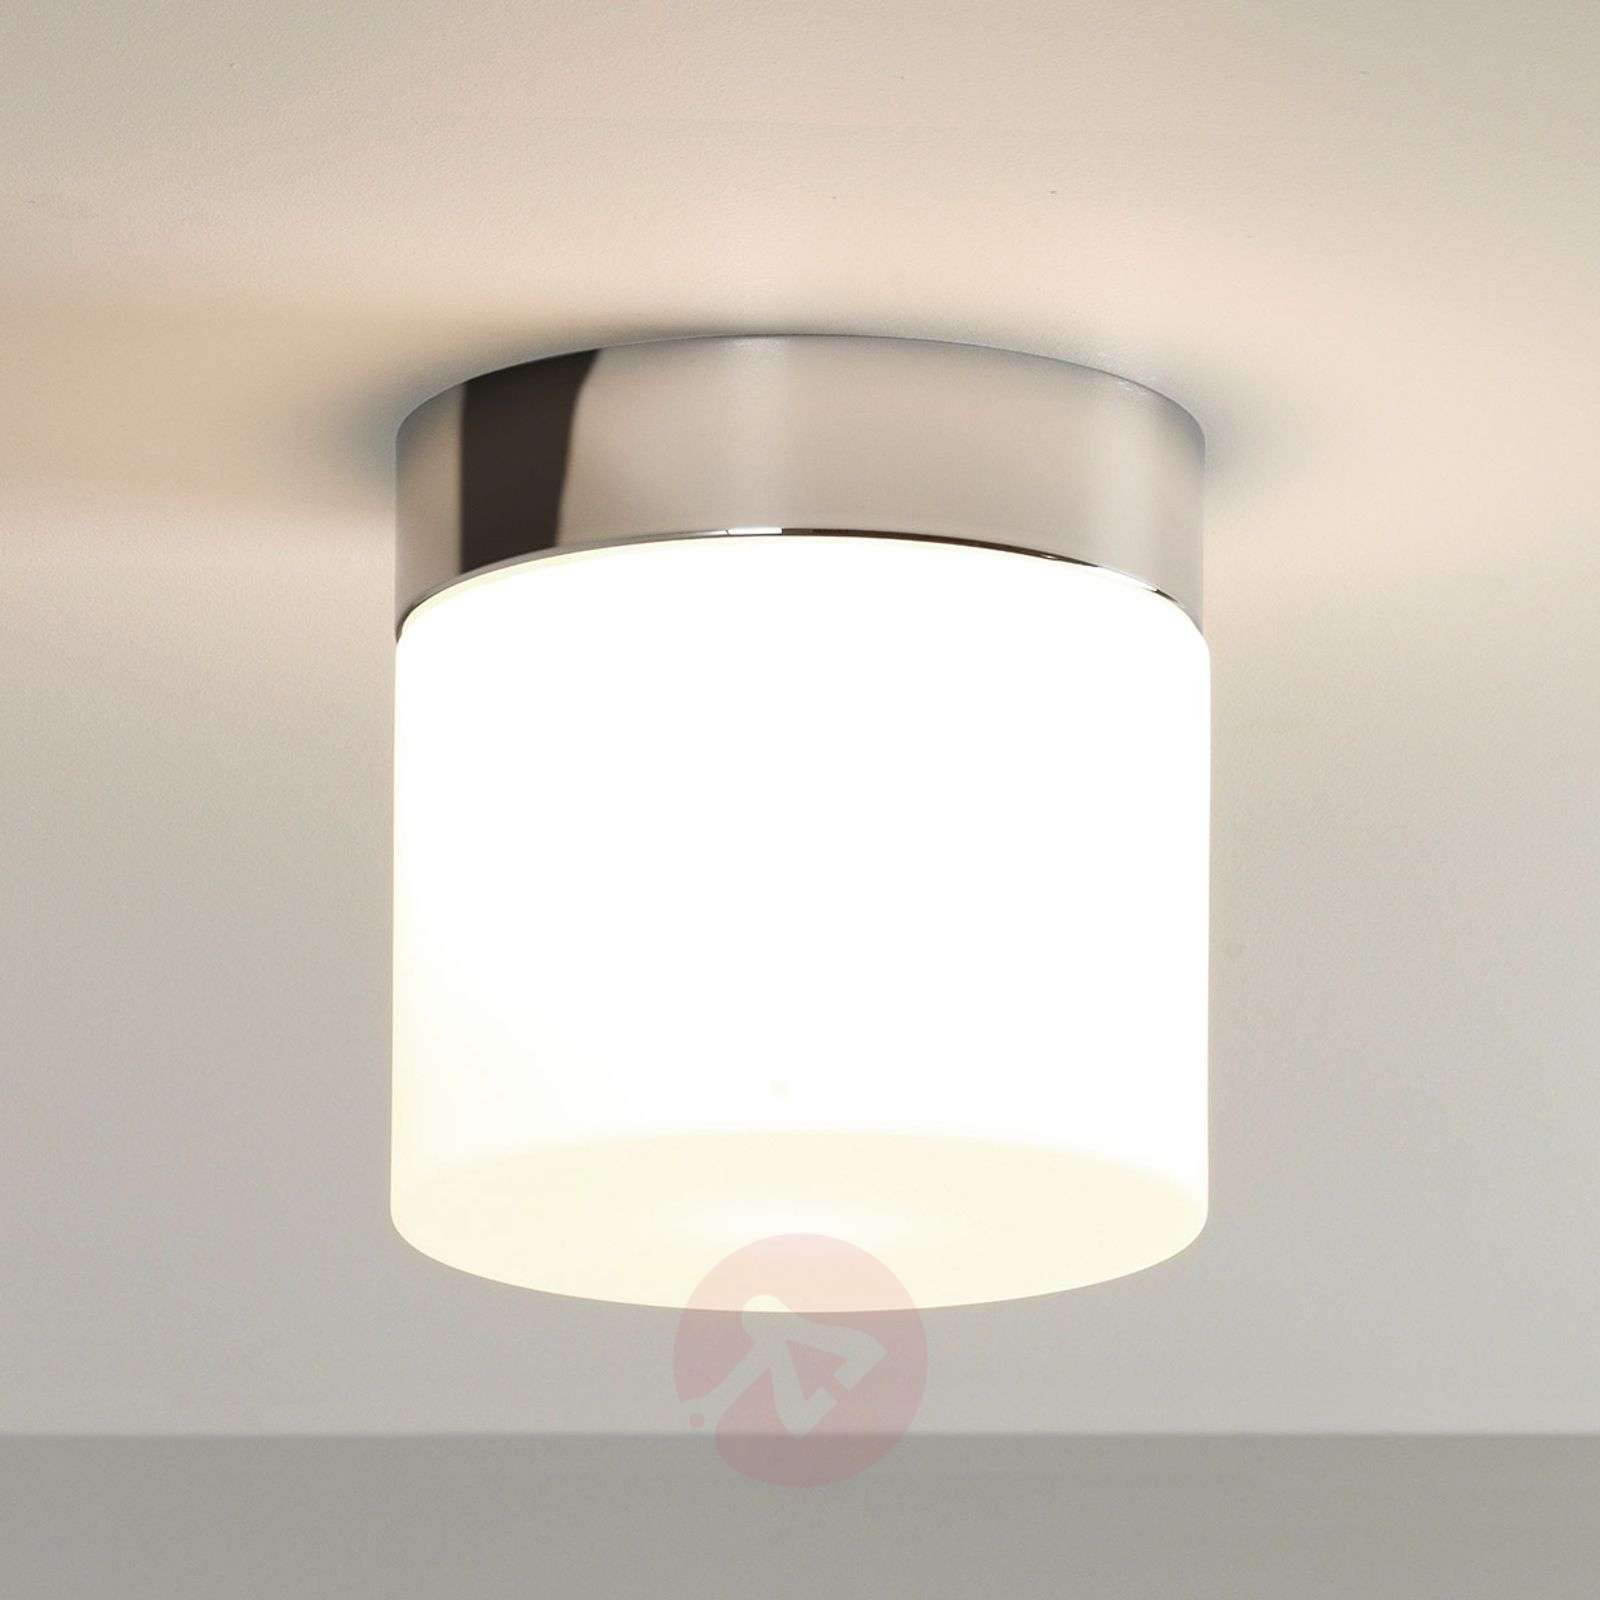 Sabina Ceiling Lights Bright Shining-1020392-02